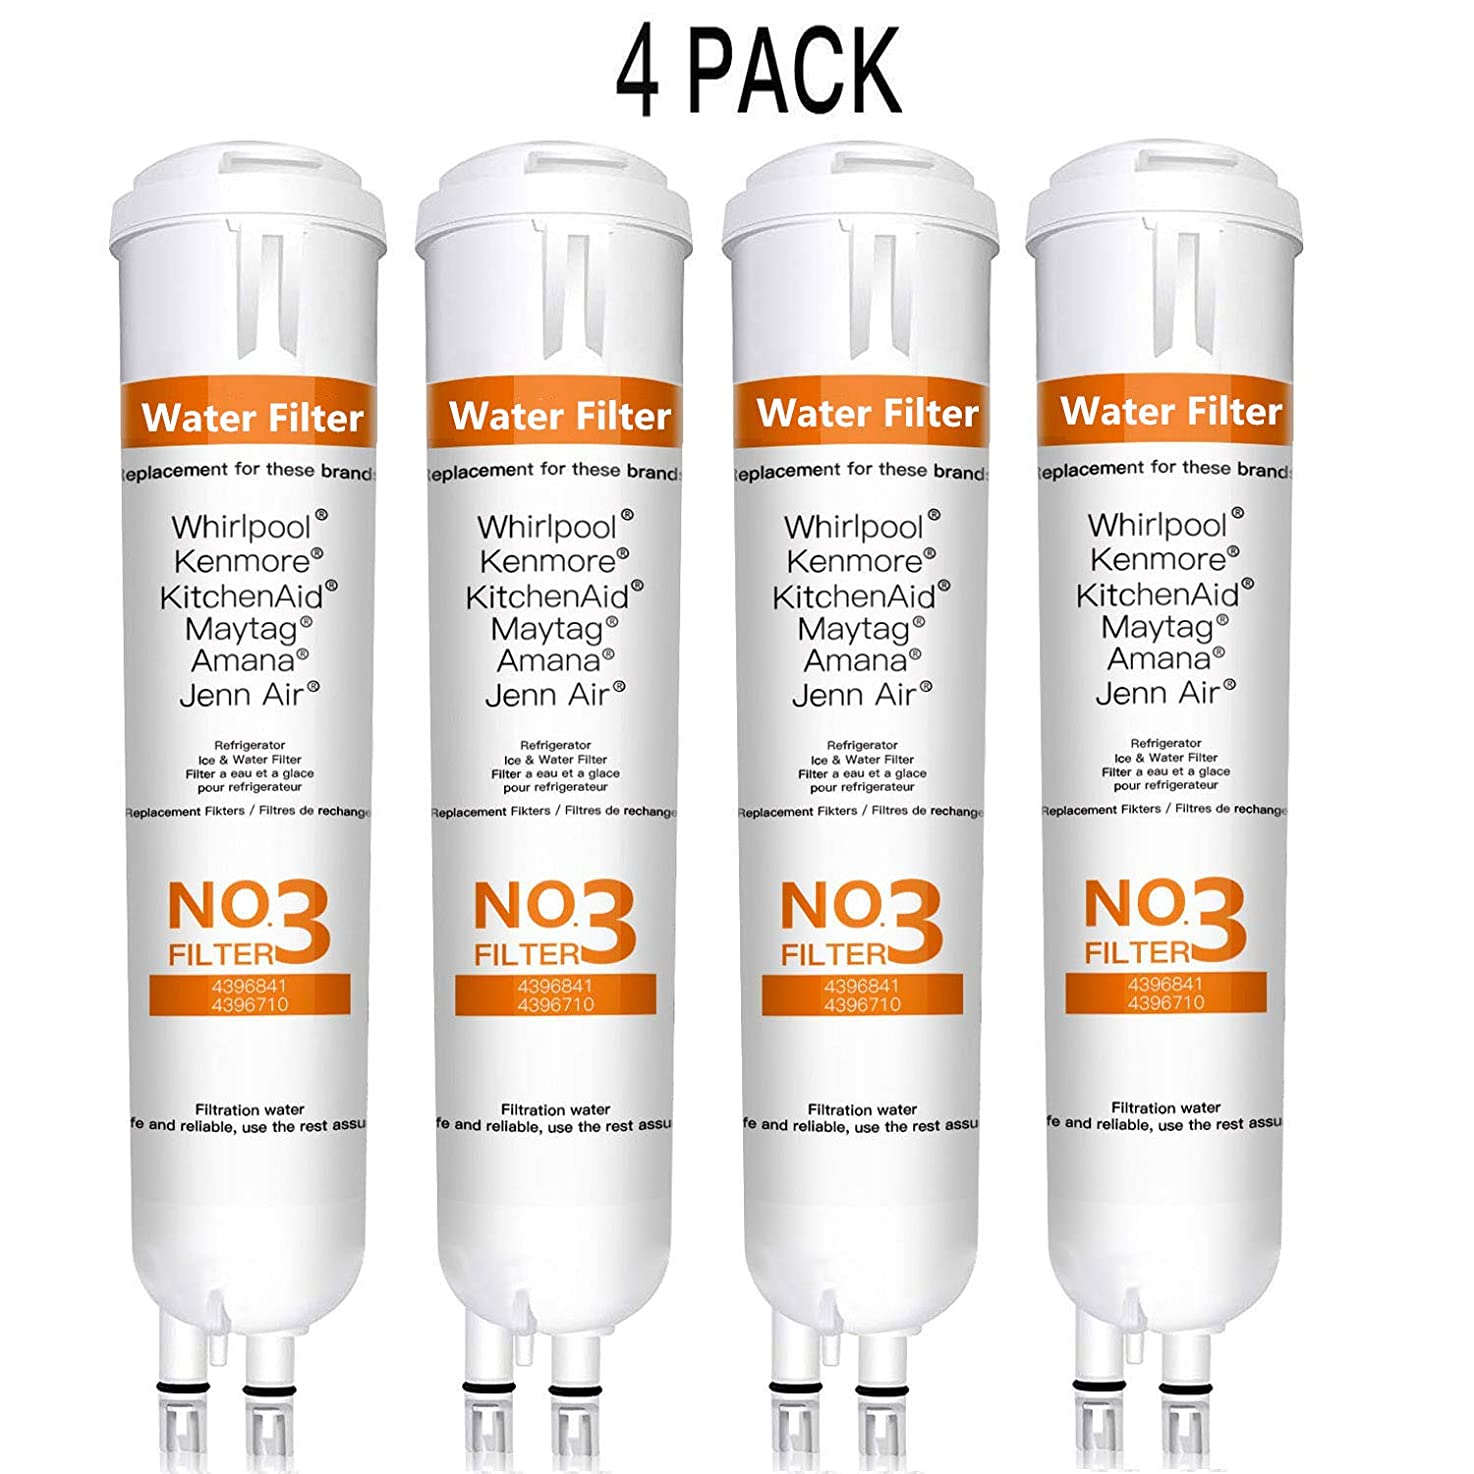 BOYTY Refrigerator Water Filter 9030 Replacement Ken-More 46/9083 9083 46/9030 9030 46/9020 Refrigerator Water Filter White(4 Pack)